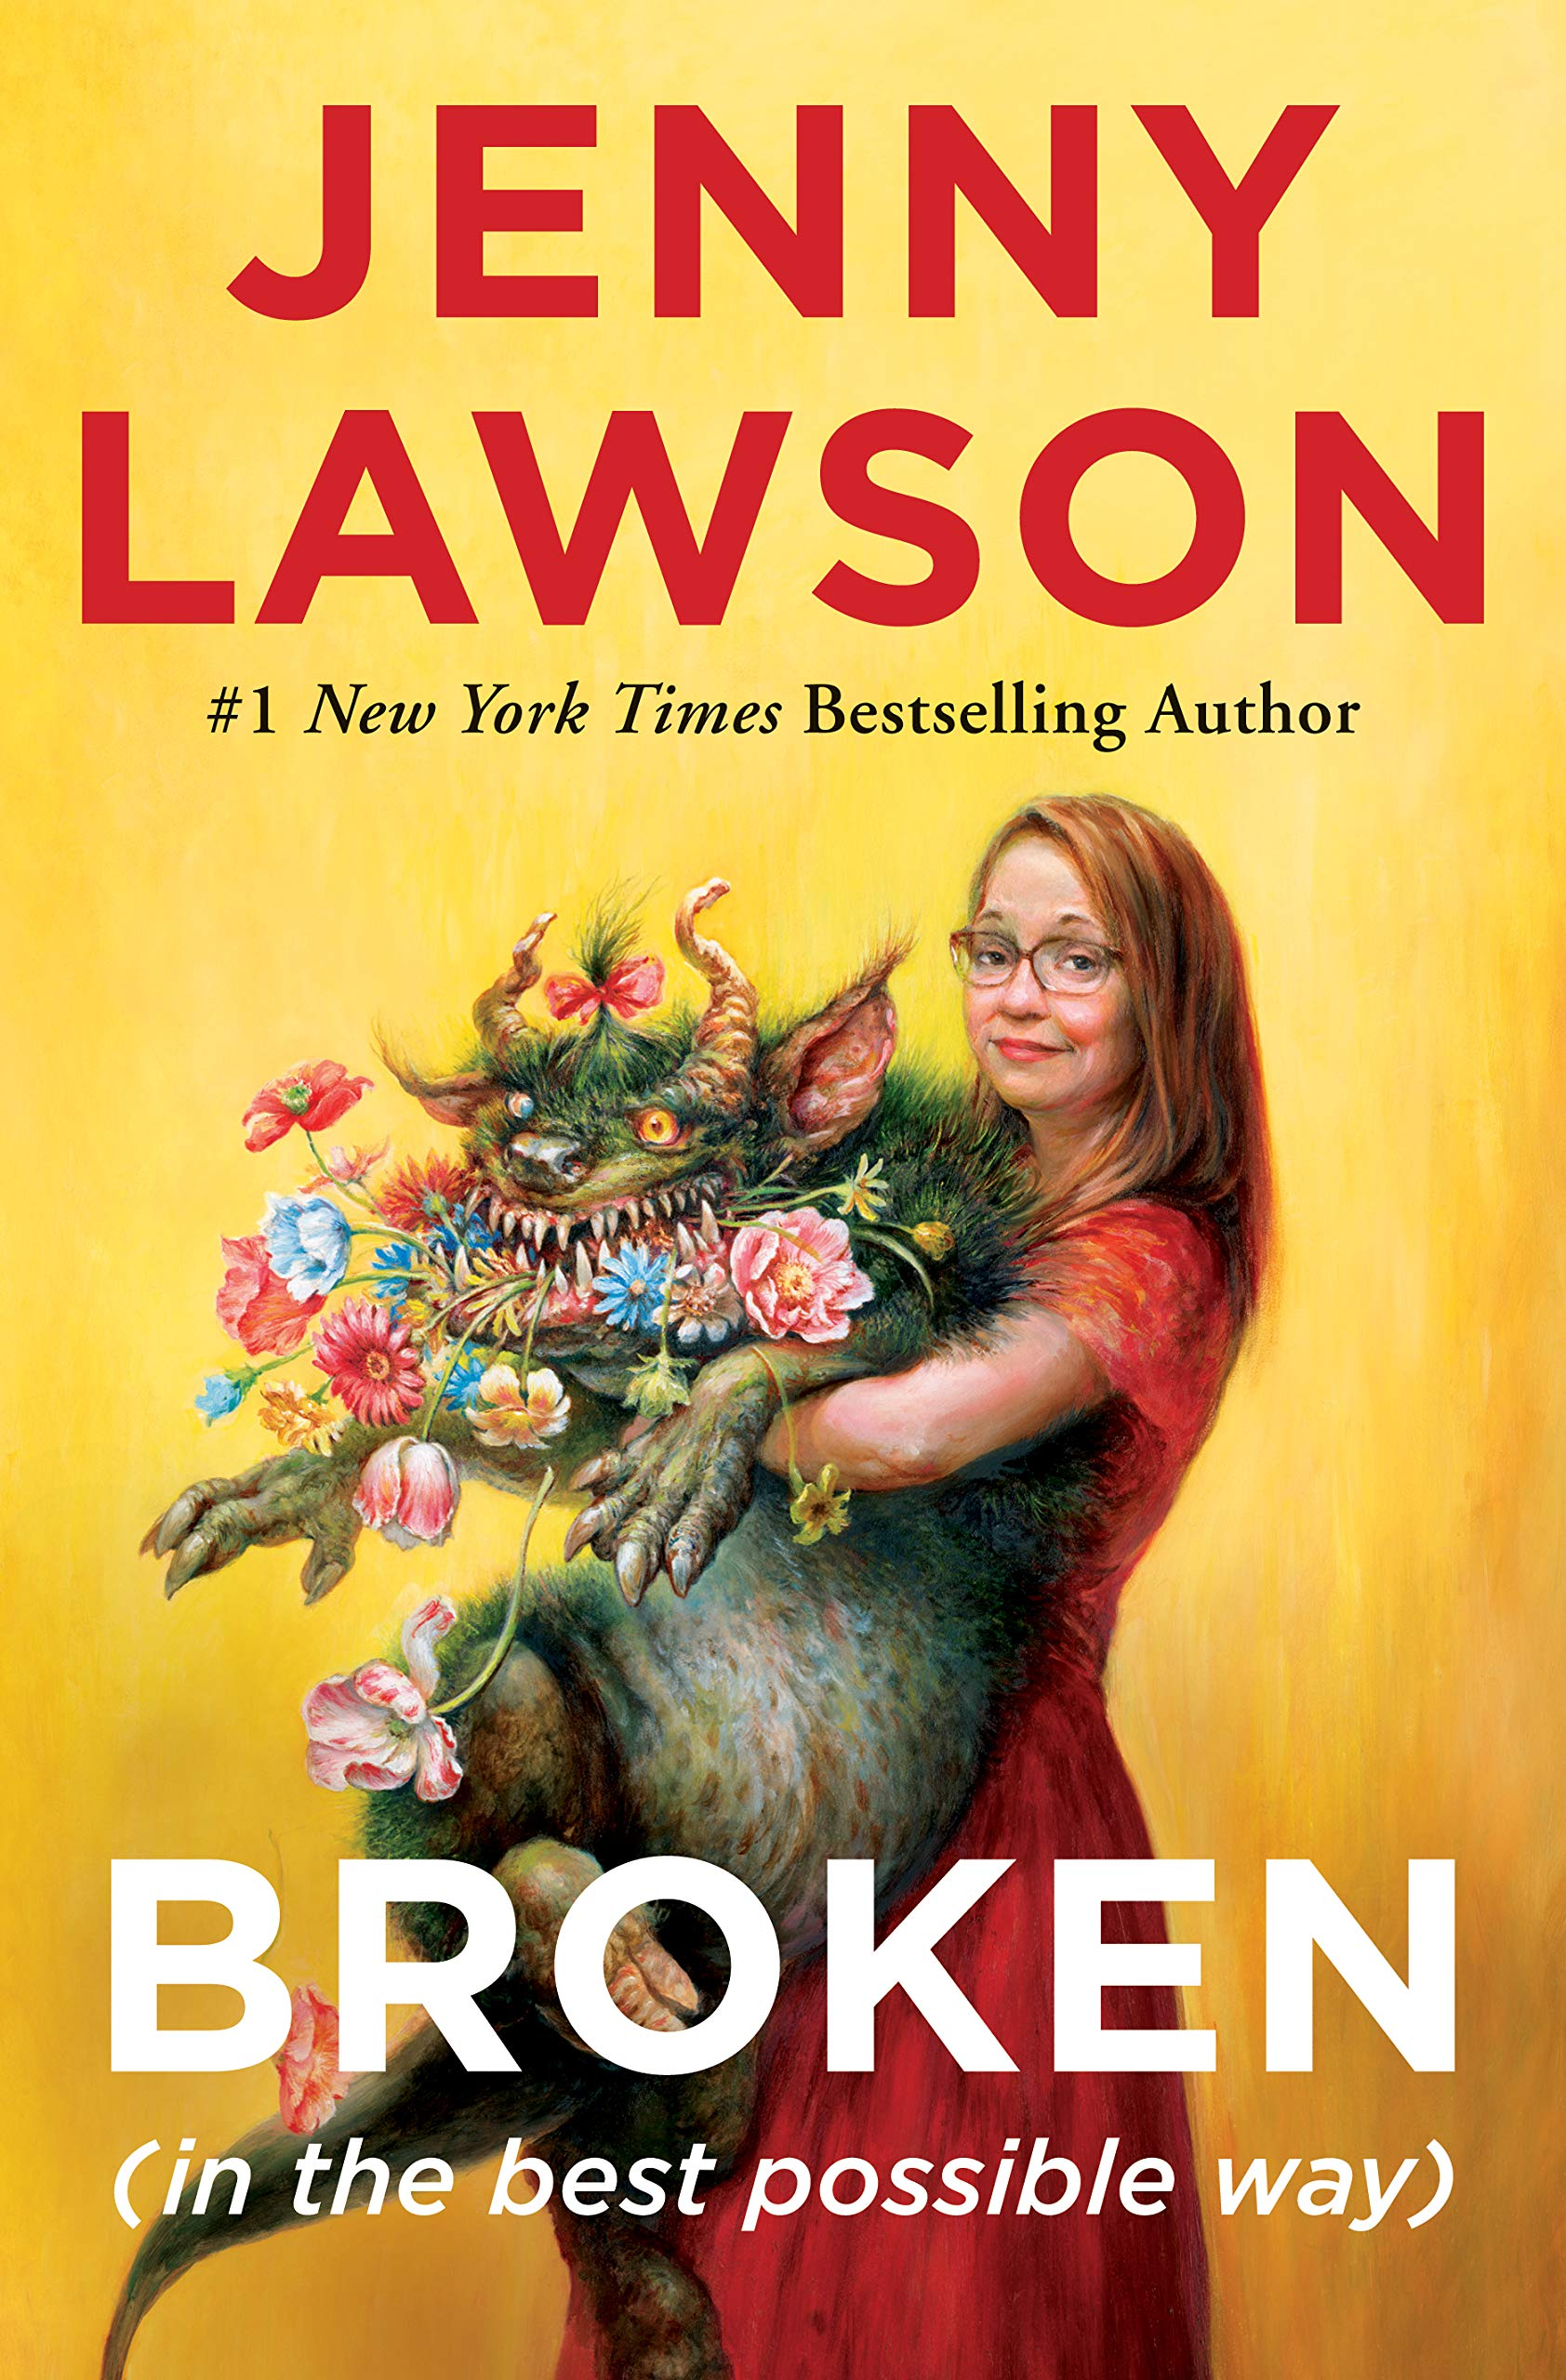 7. Broken (In the Best Possible Way) by Jenny Lawson